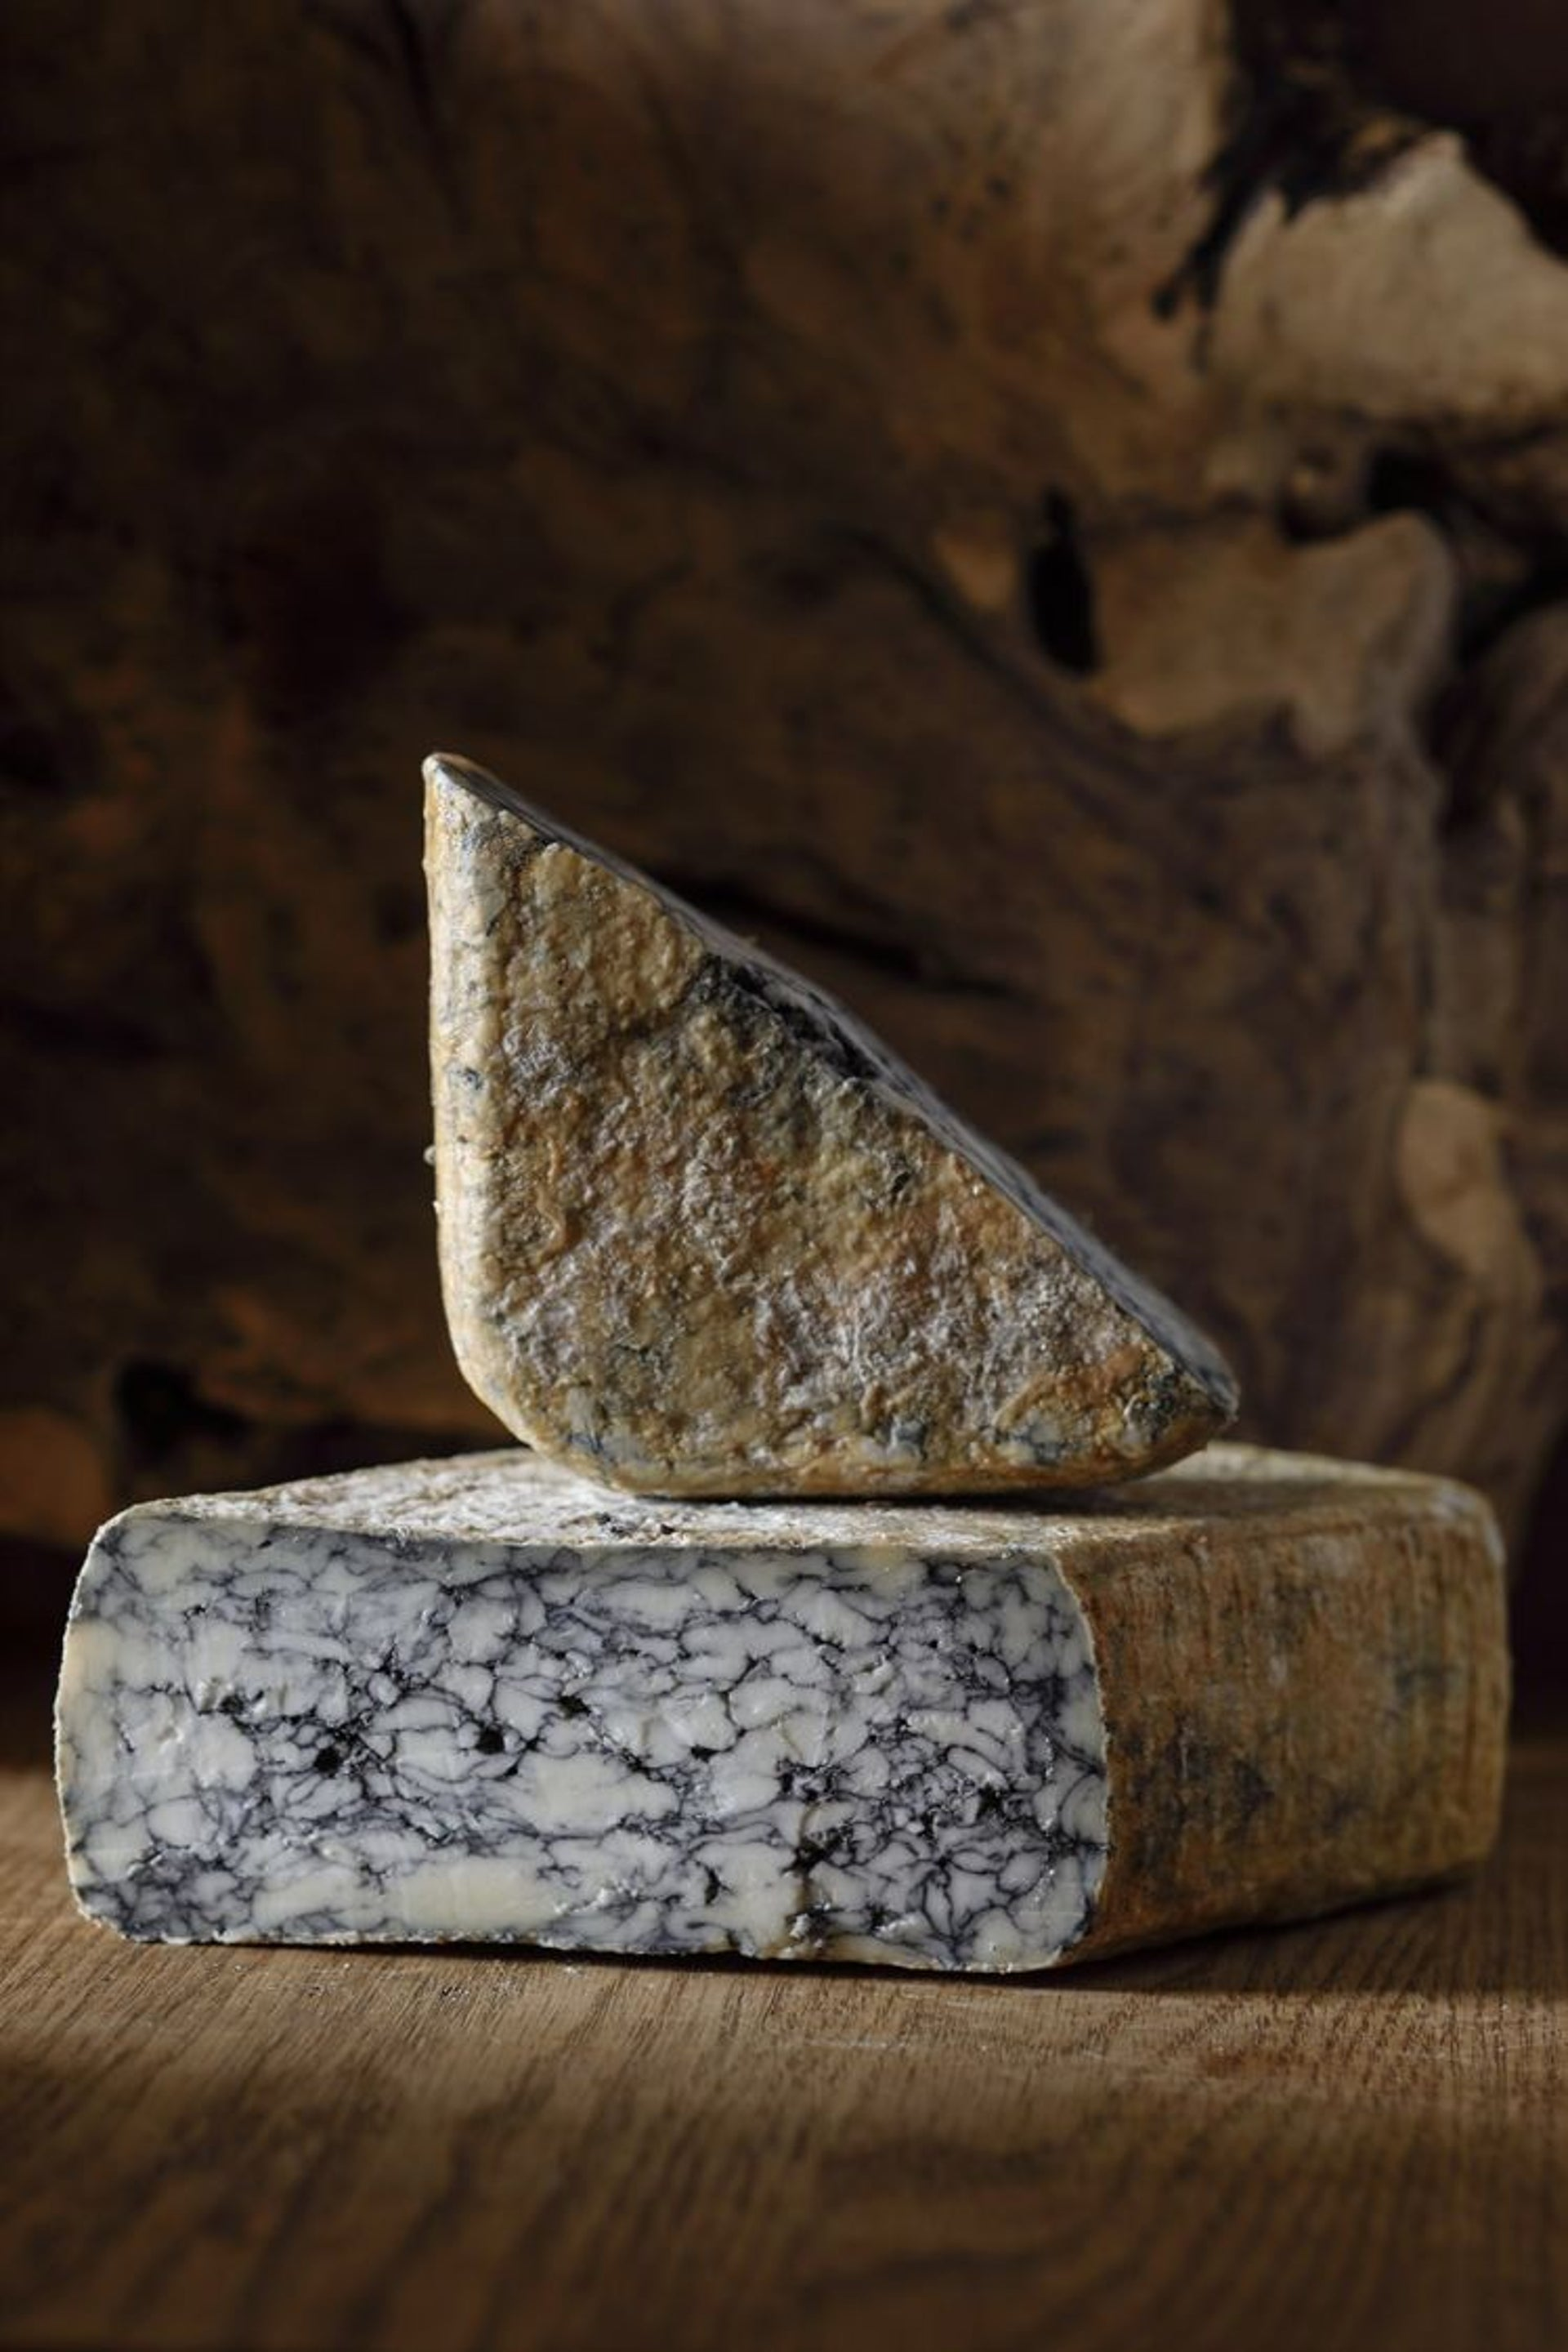 Granite cheese.